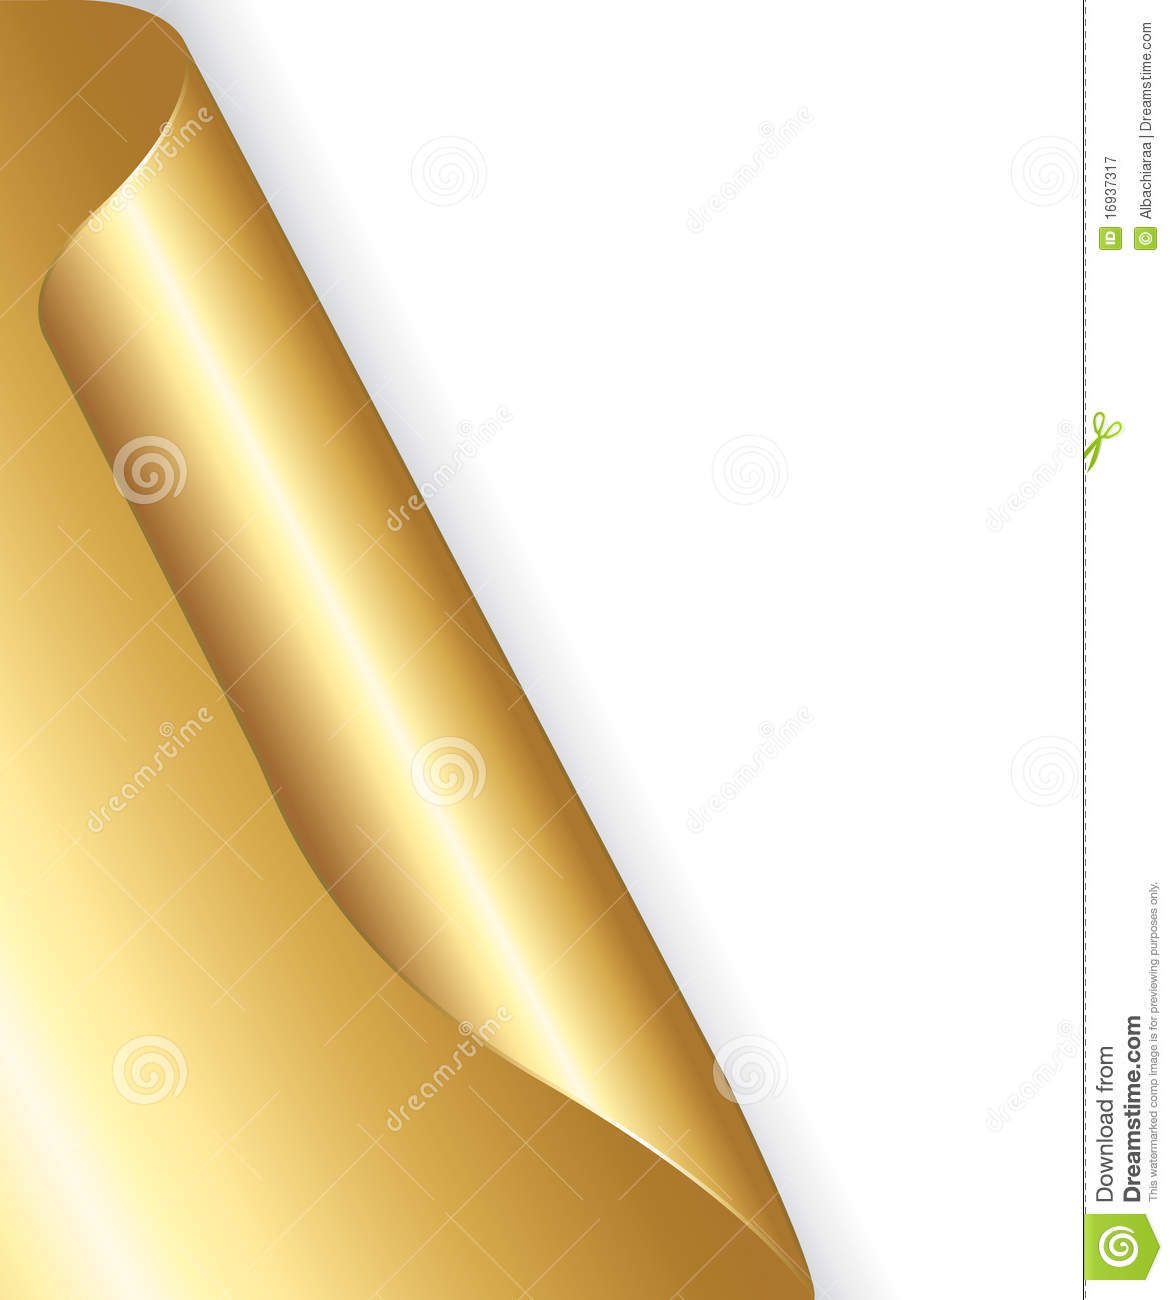 Golden Rolled Up Corner Paper Royalty Free Stock